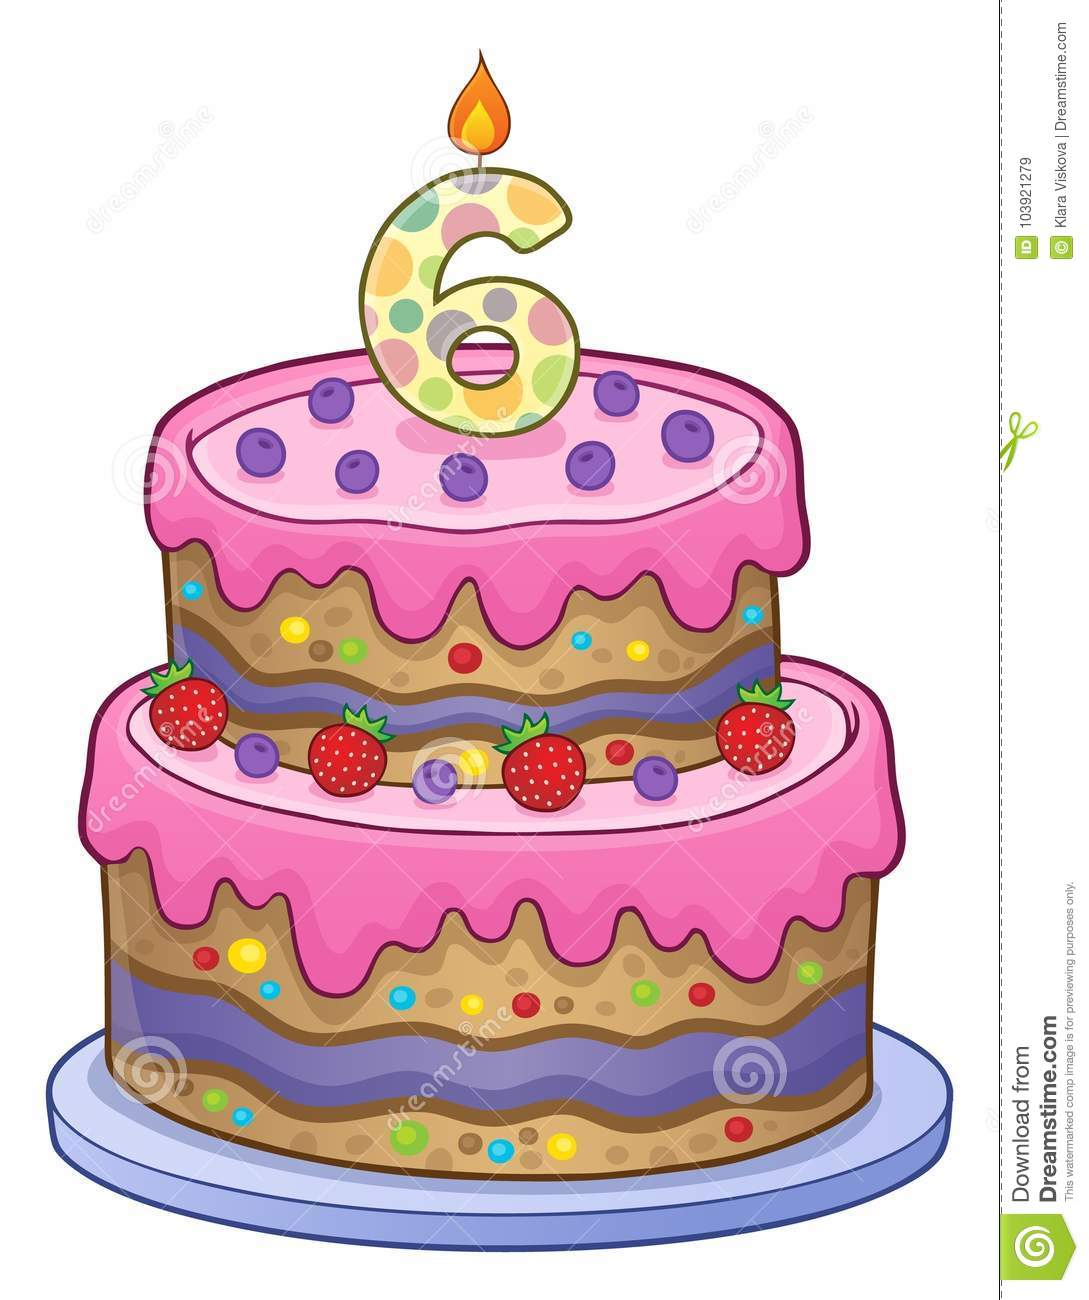 Birthday Cake Image For 6 Years Old Stock Vector Illustration Of